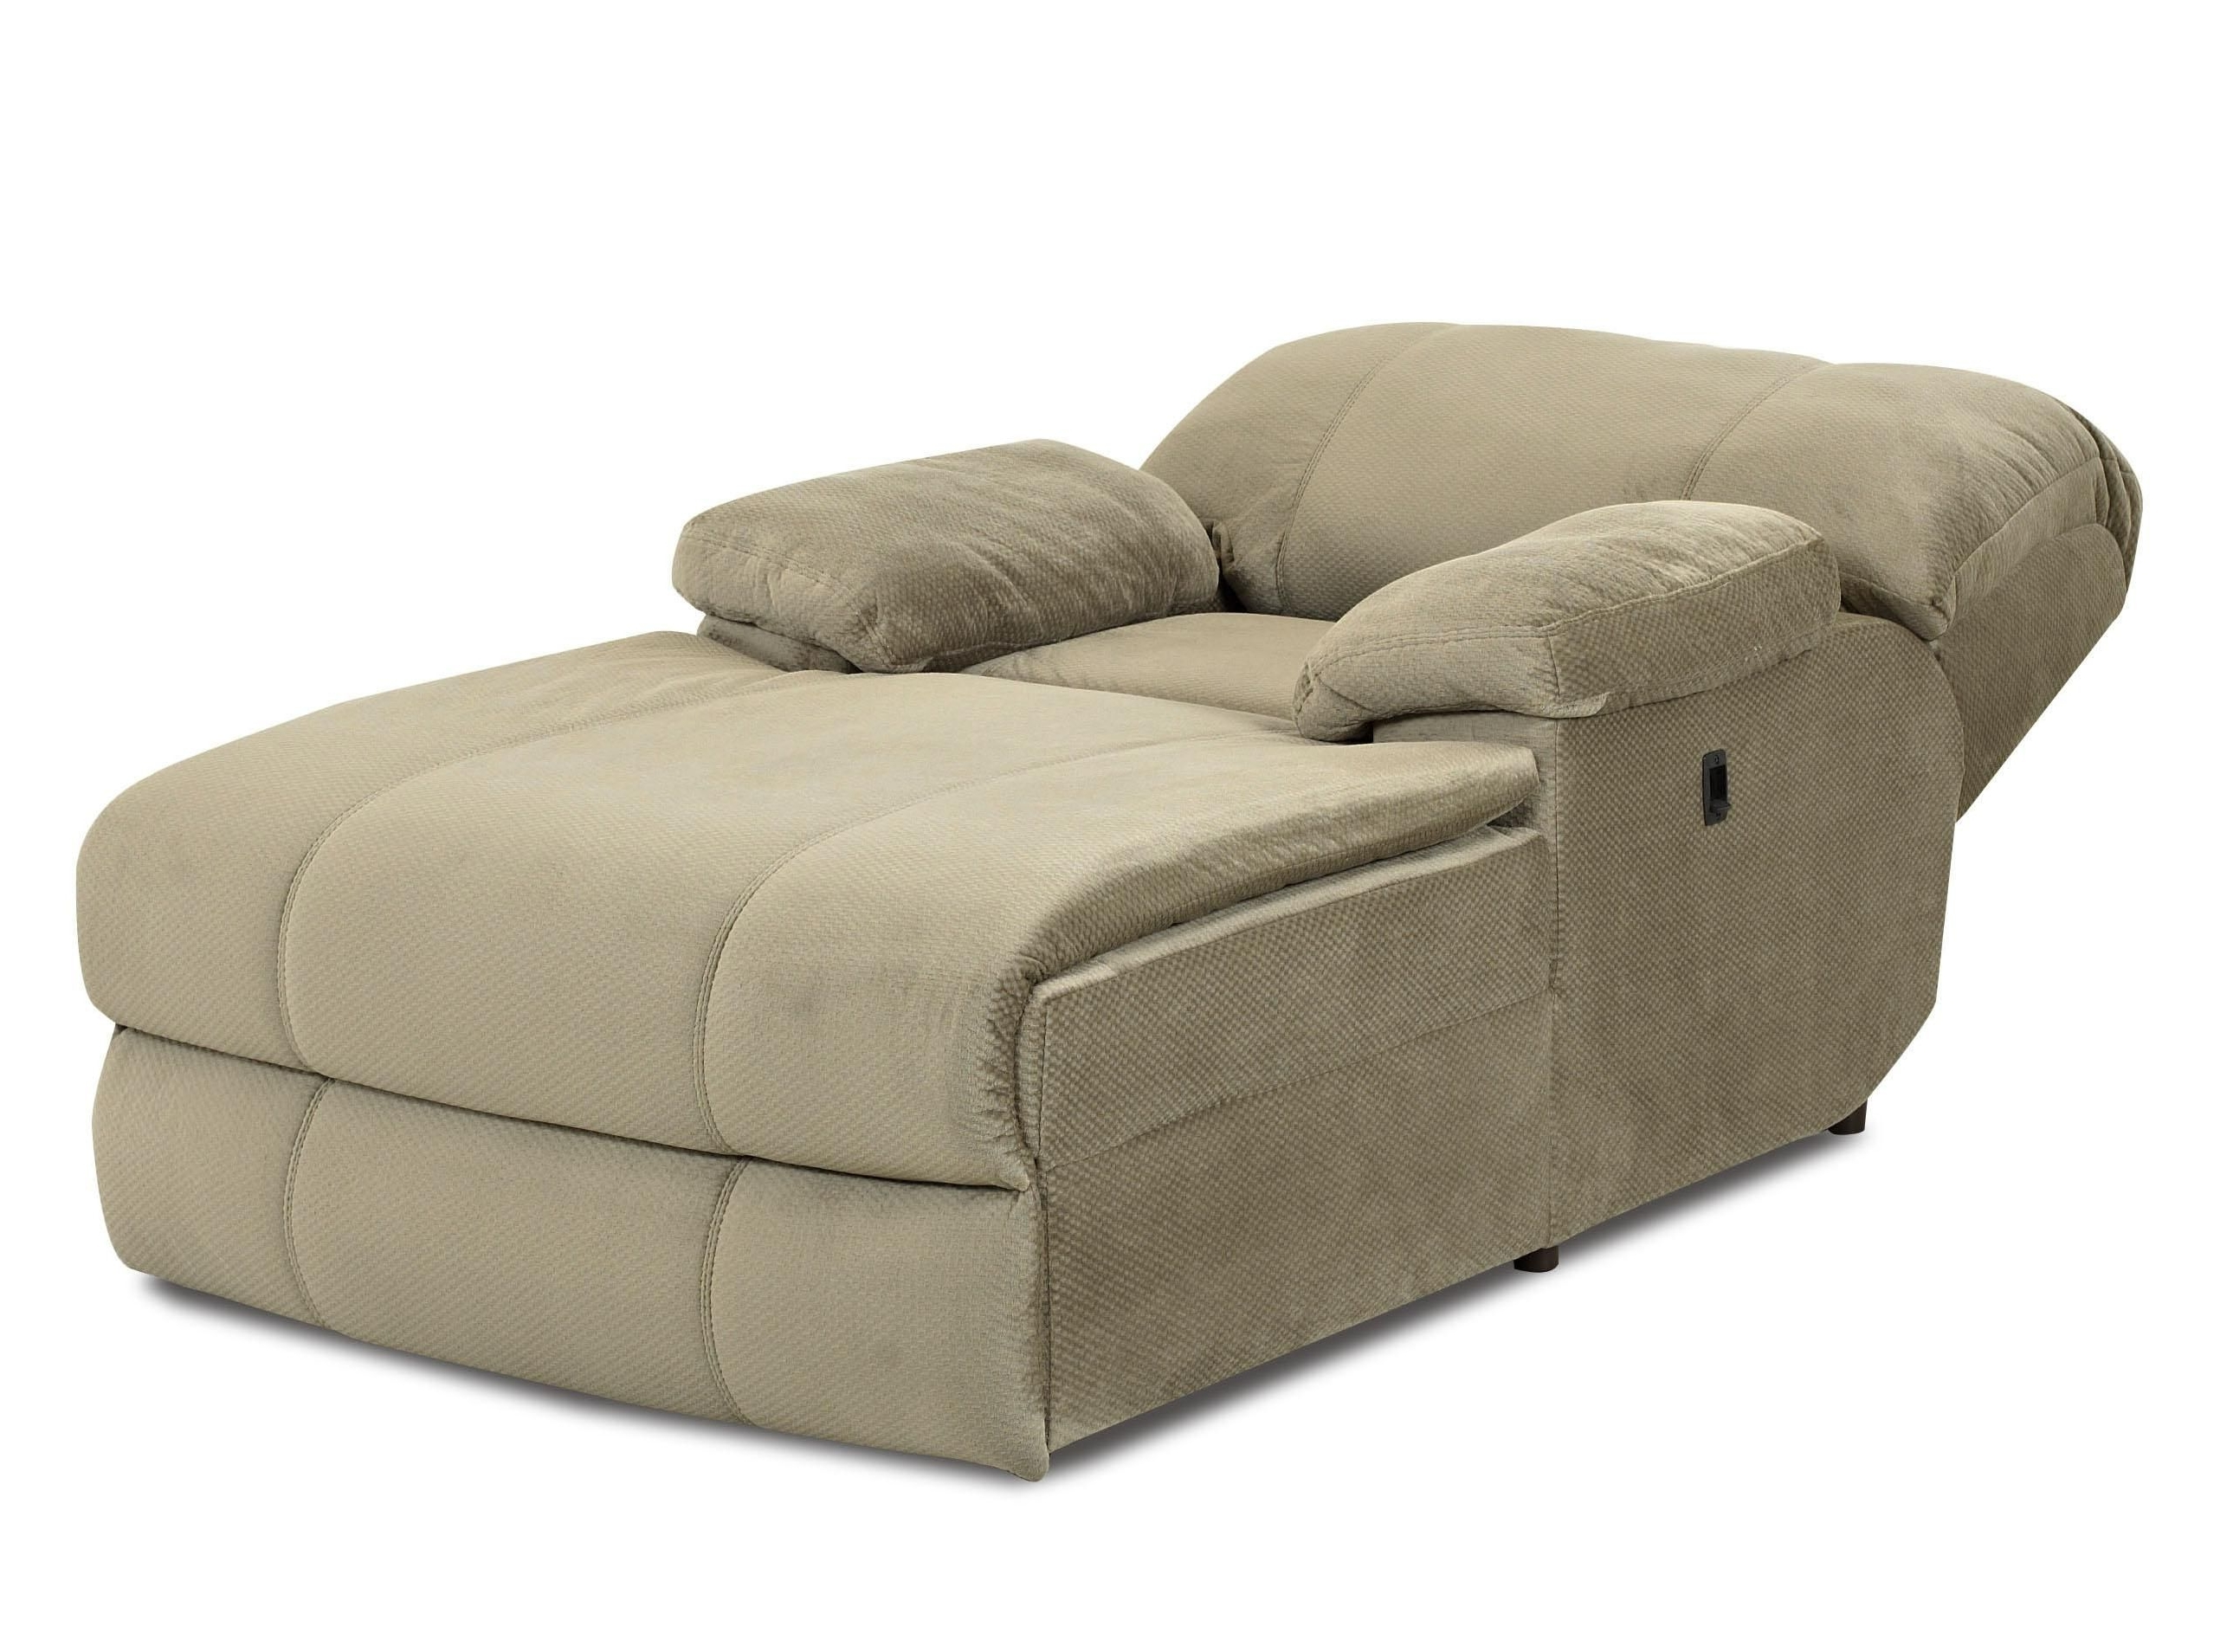 Kensington Reclining Chaise (Gallery 11 of 15)